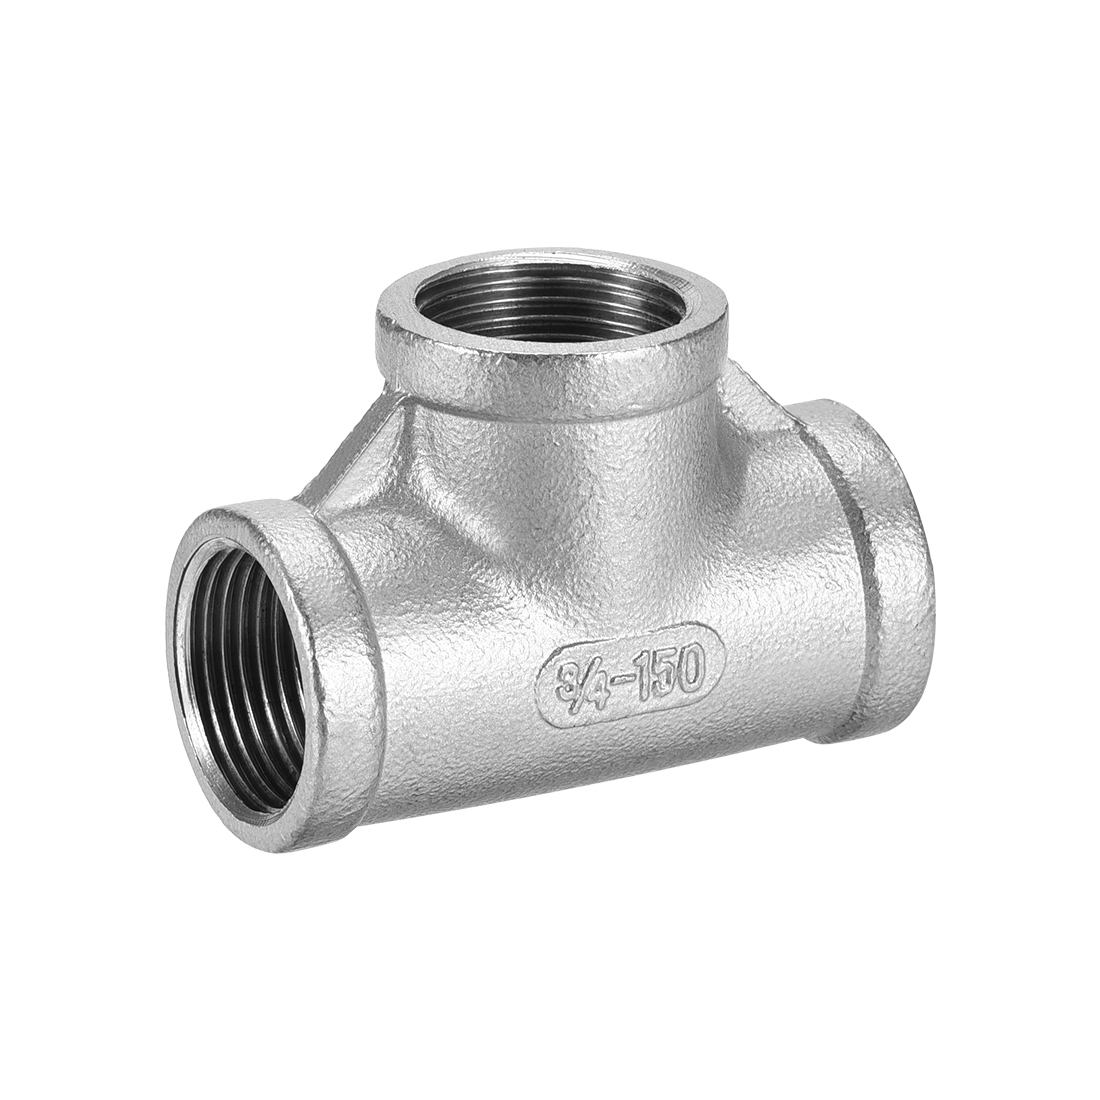 Stainless Steel 304 Pipe Fitting 3/4BSPT Female Class 150 Tee Shaped Connector